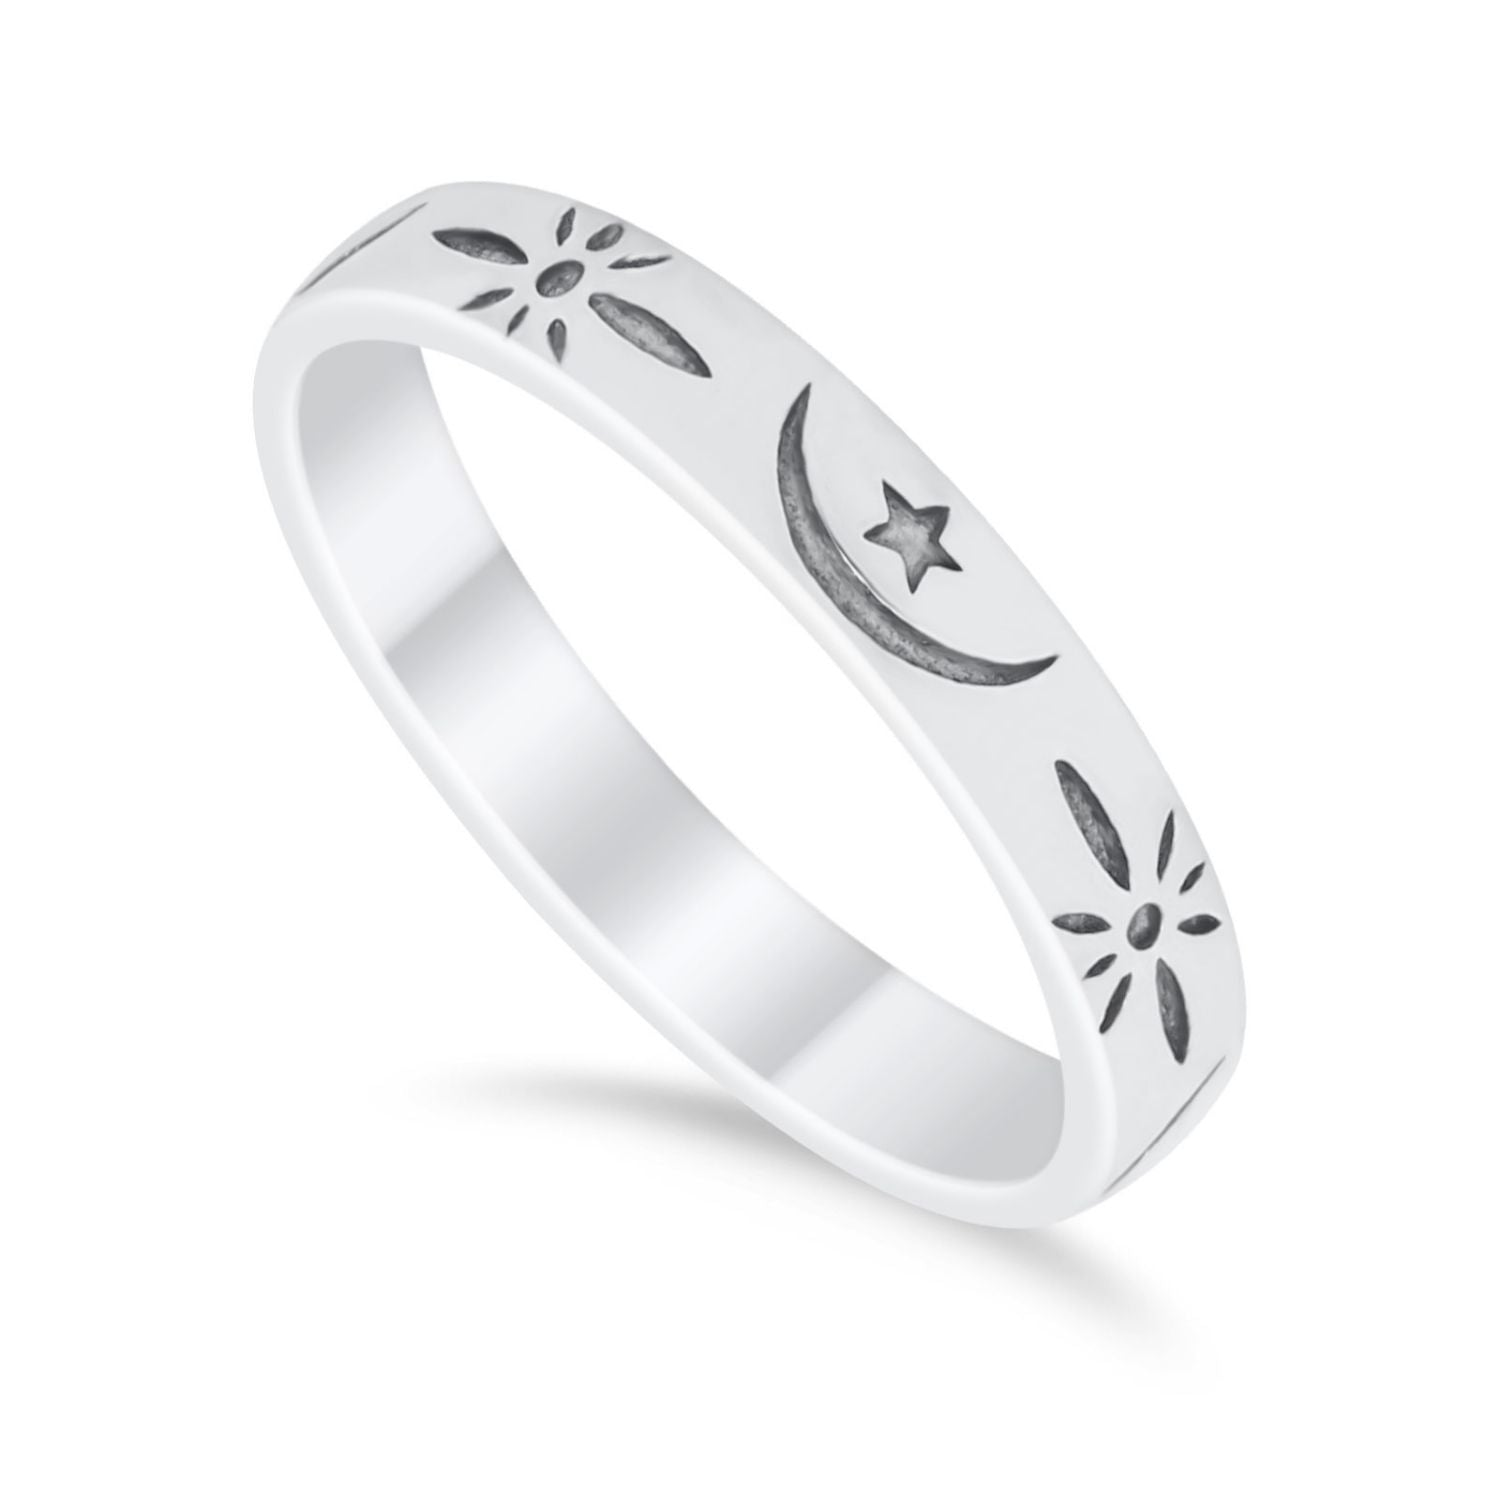 Moon Star Thumb Ring Wedding Bands Star Moon Band Round 925 Sterling Silver